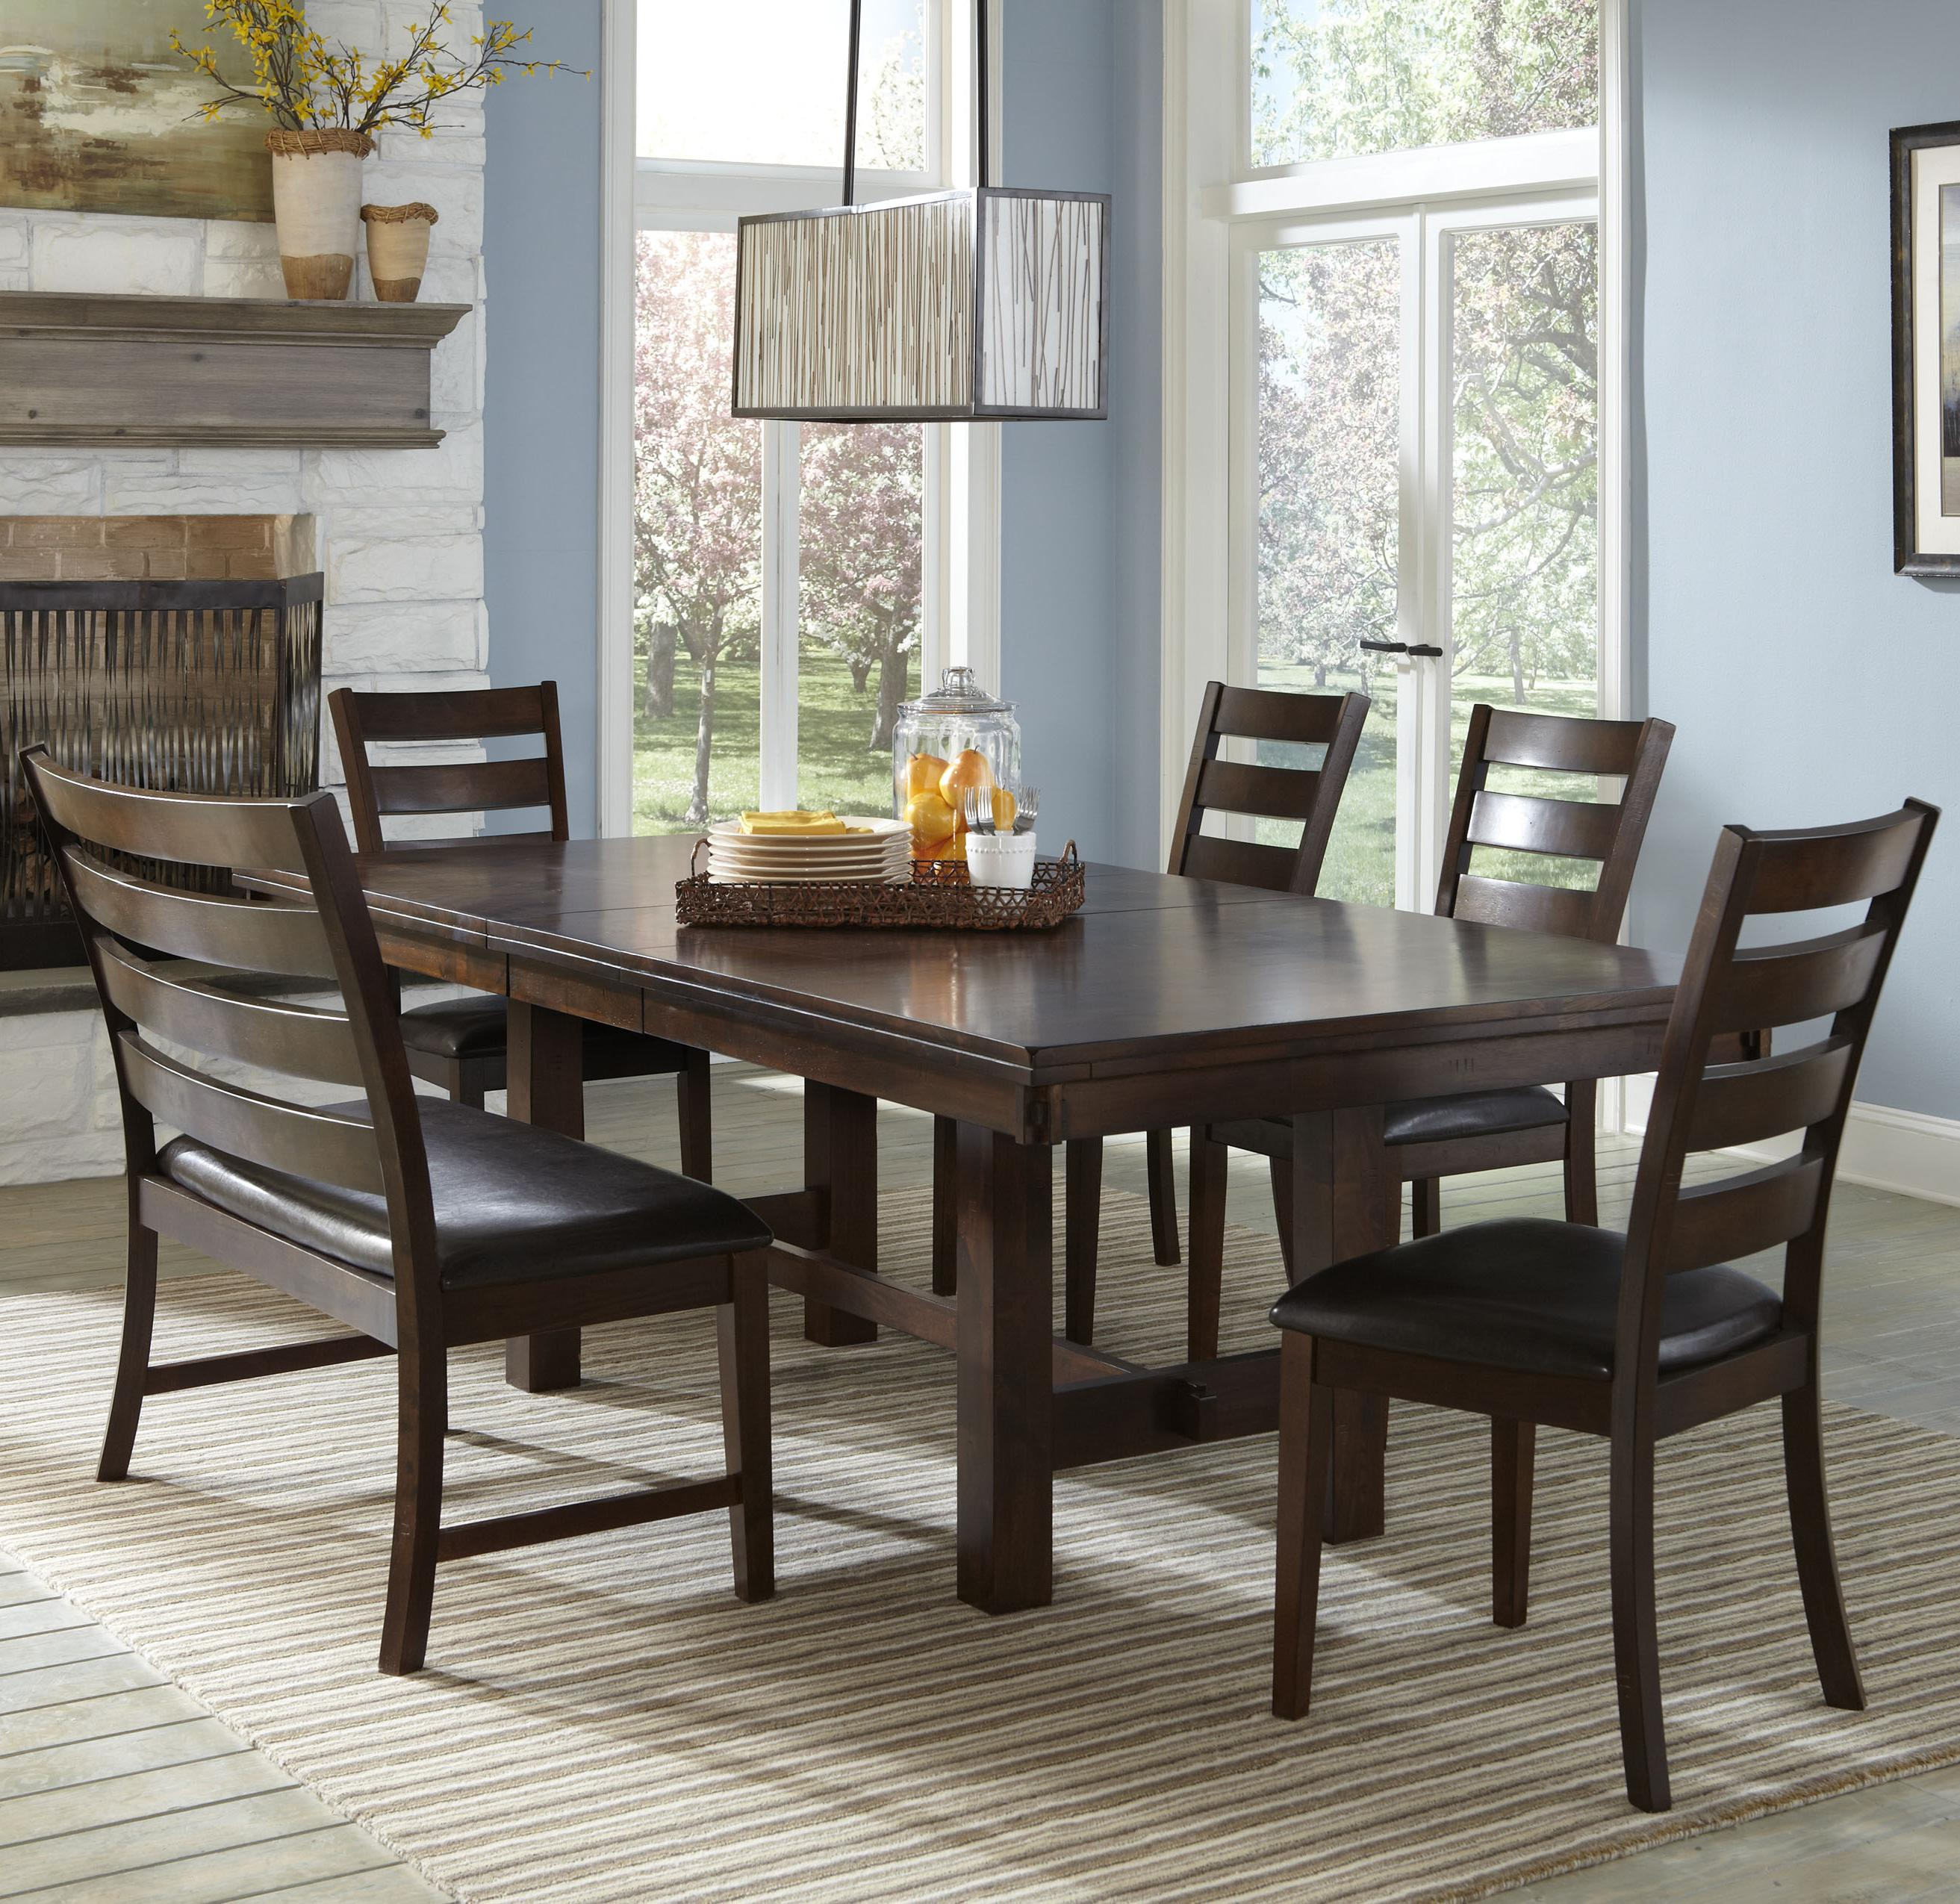 Intercon Kona Trestle Dining Table With Leaf Virginia